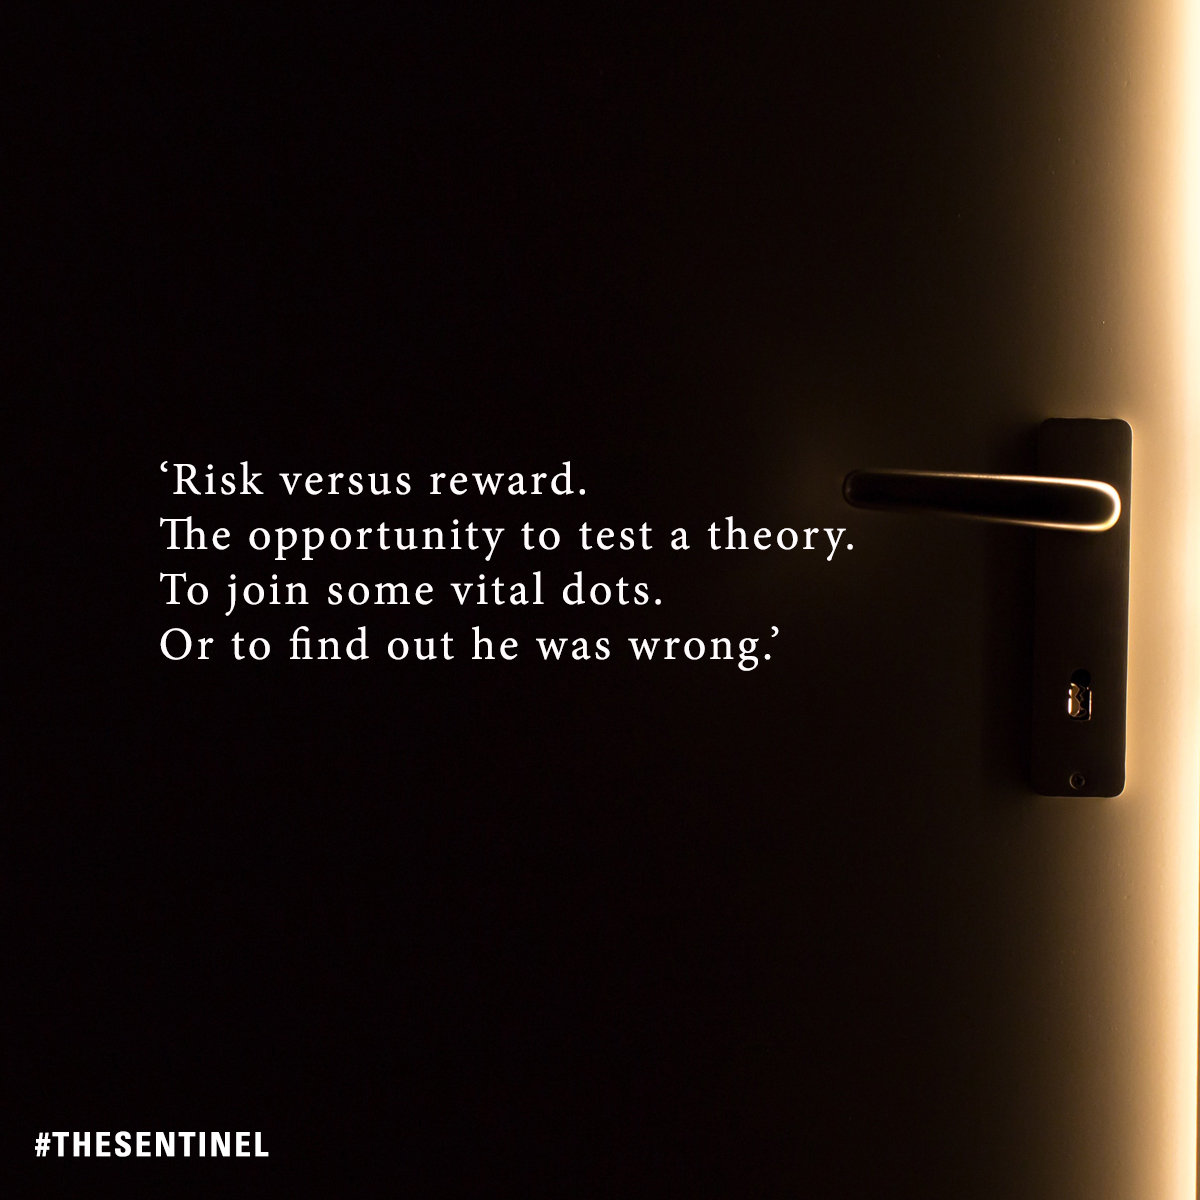 Risk versus reward. The opportunity to test a theory. To join some vital dots. Or to find out he was wrong. #TheSentinel smarturl.it/TheSentinel